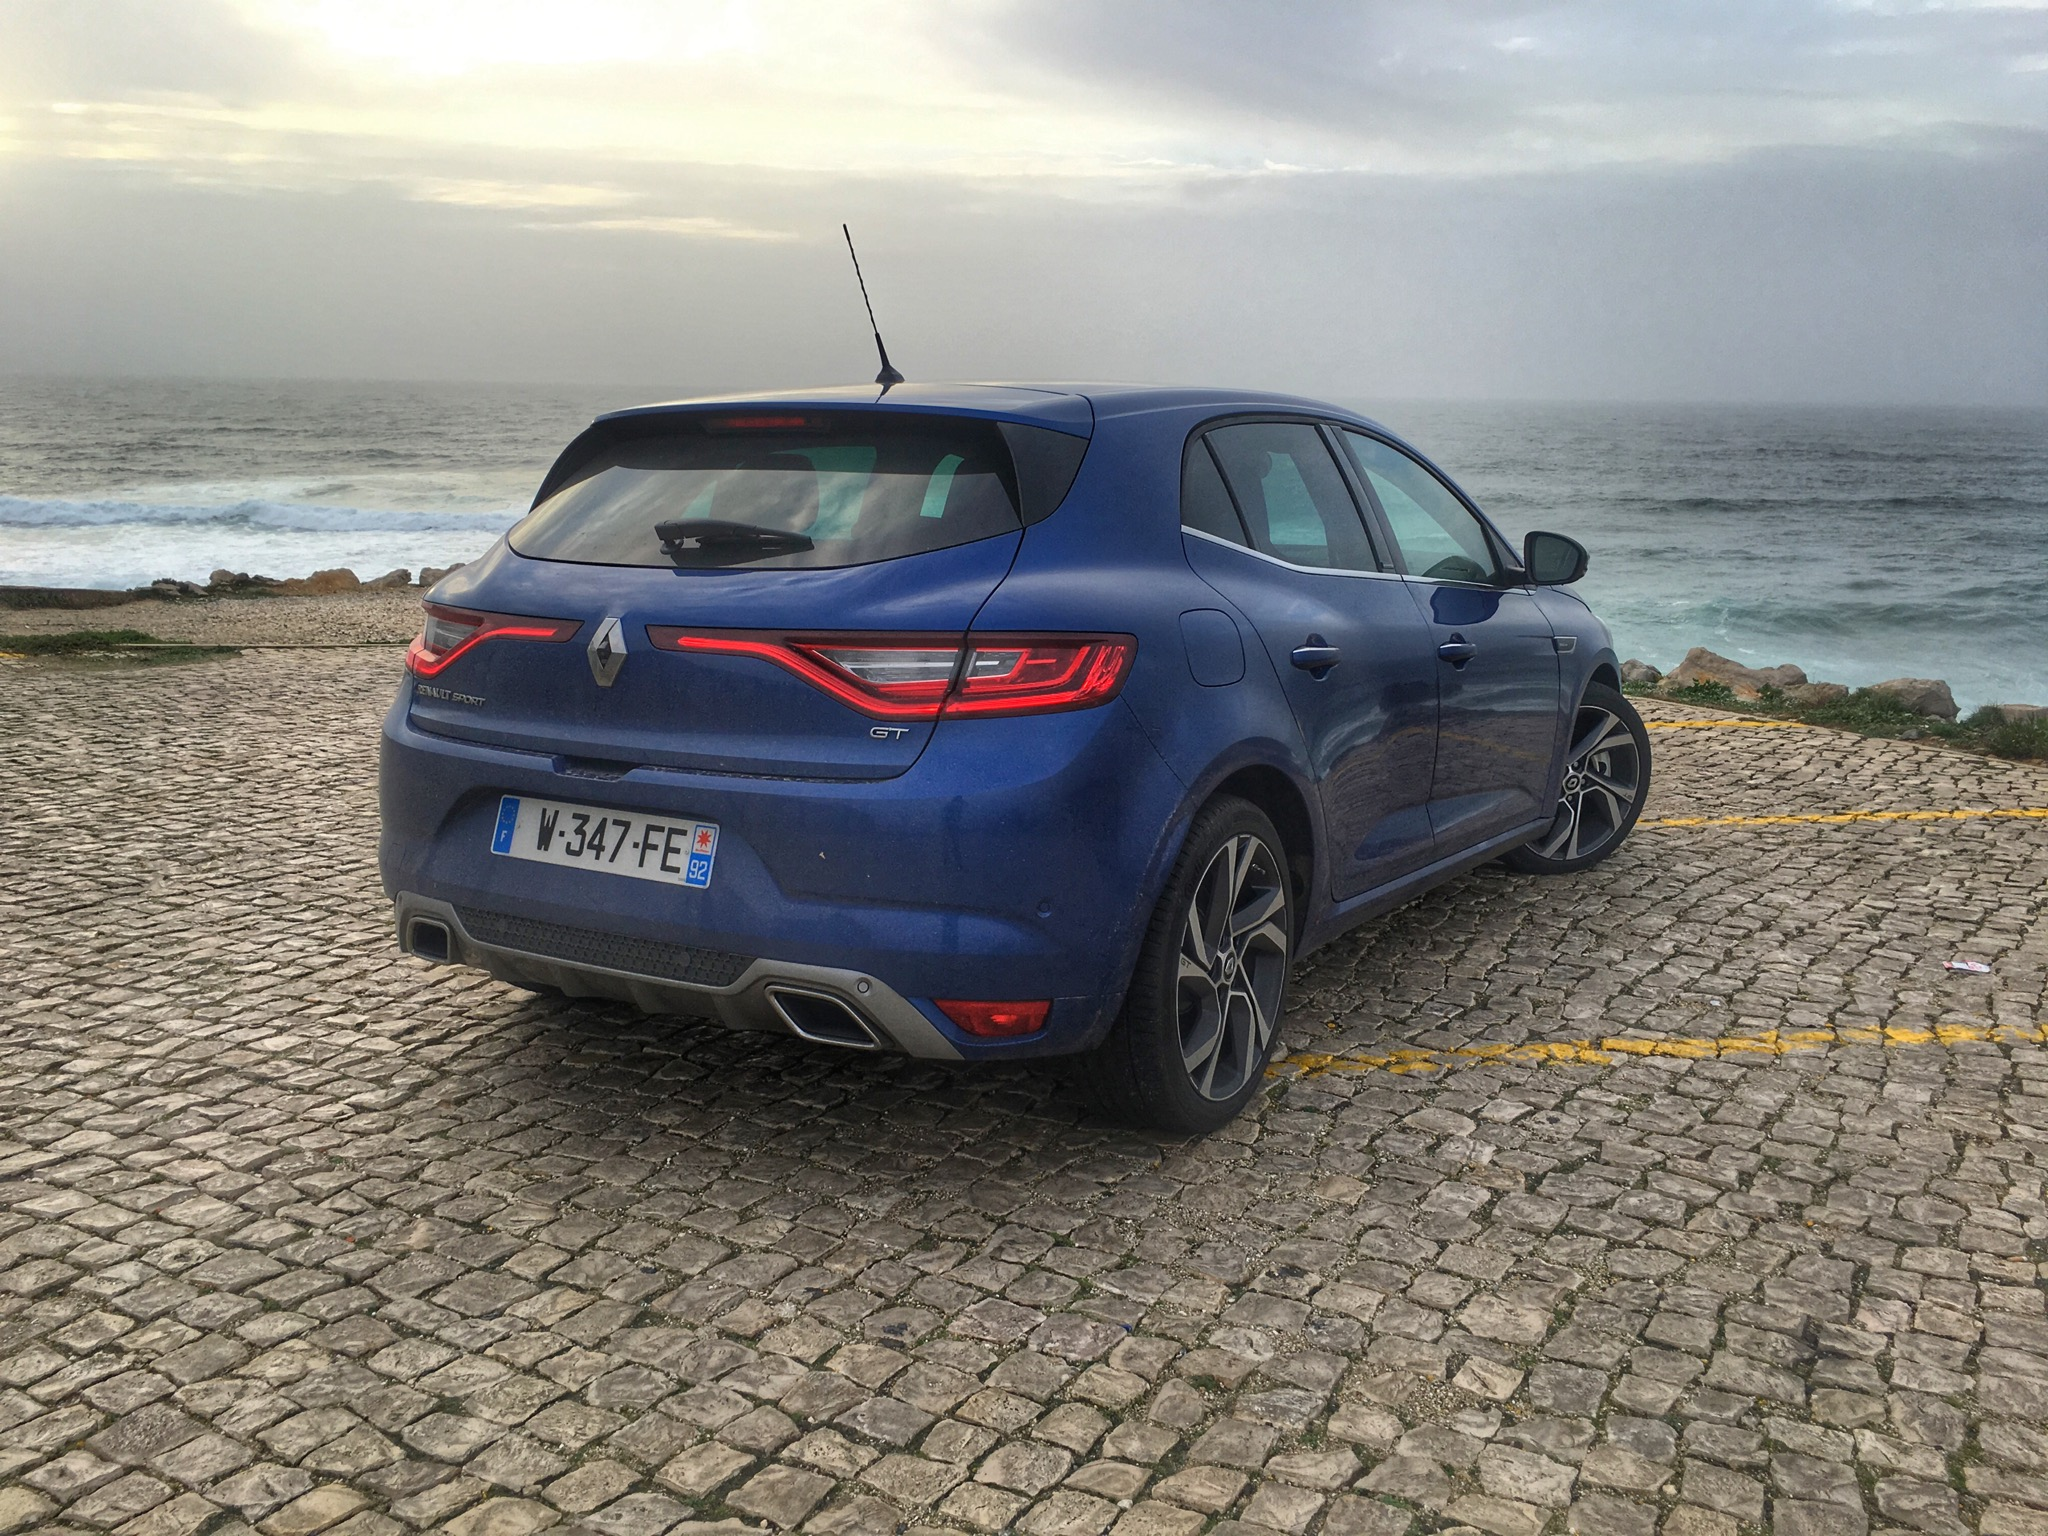 2016 Renault Megane Gt Rear Side View (Photo 11 of 27)